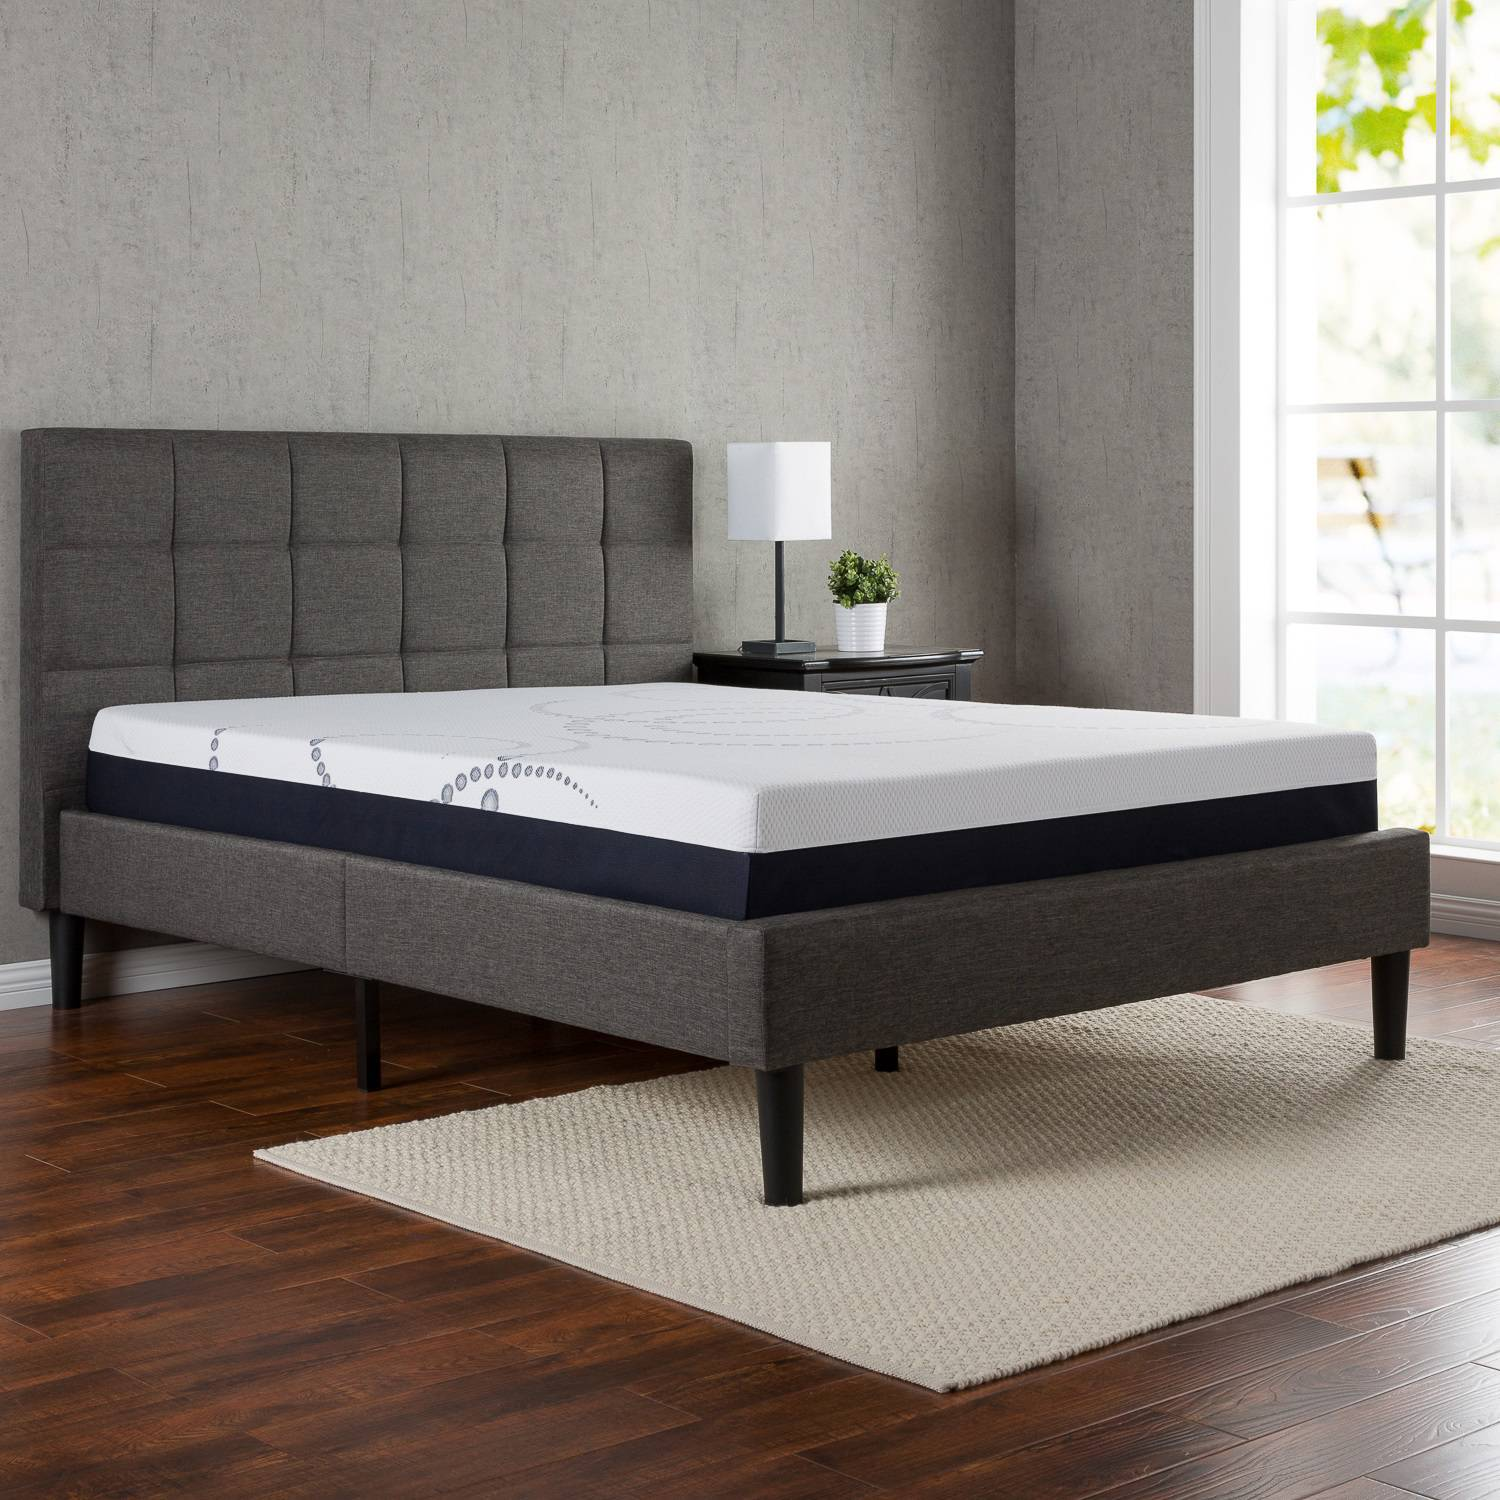 full size platform bed frame with headboard zinus upholstered square stitched platform bed with headboard and wooden VBTZJKZ